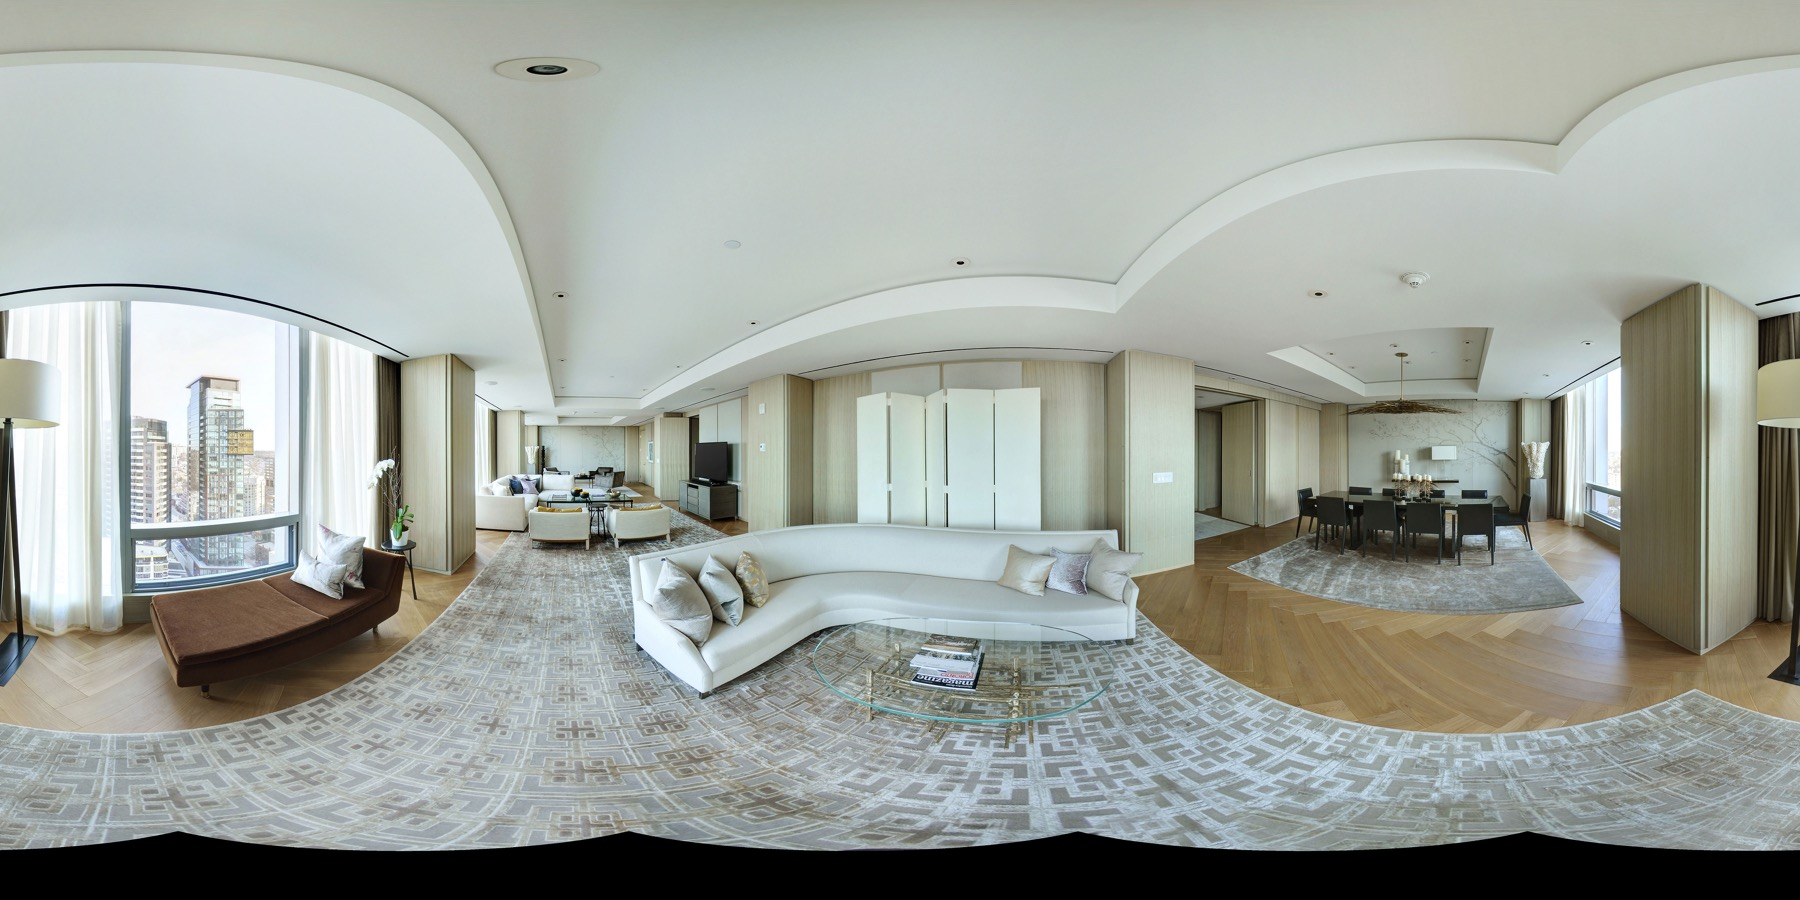 360 Photography: How to Photograph Interiors